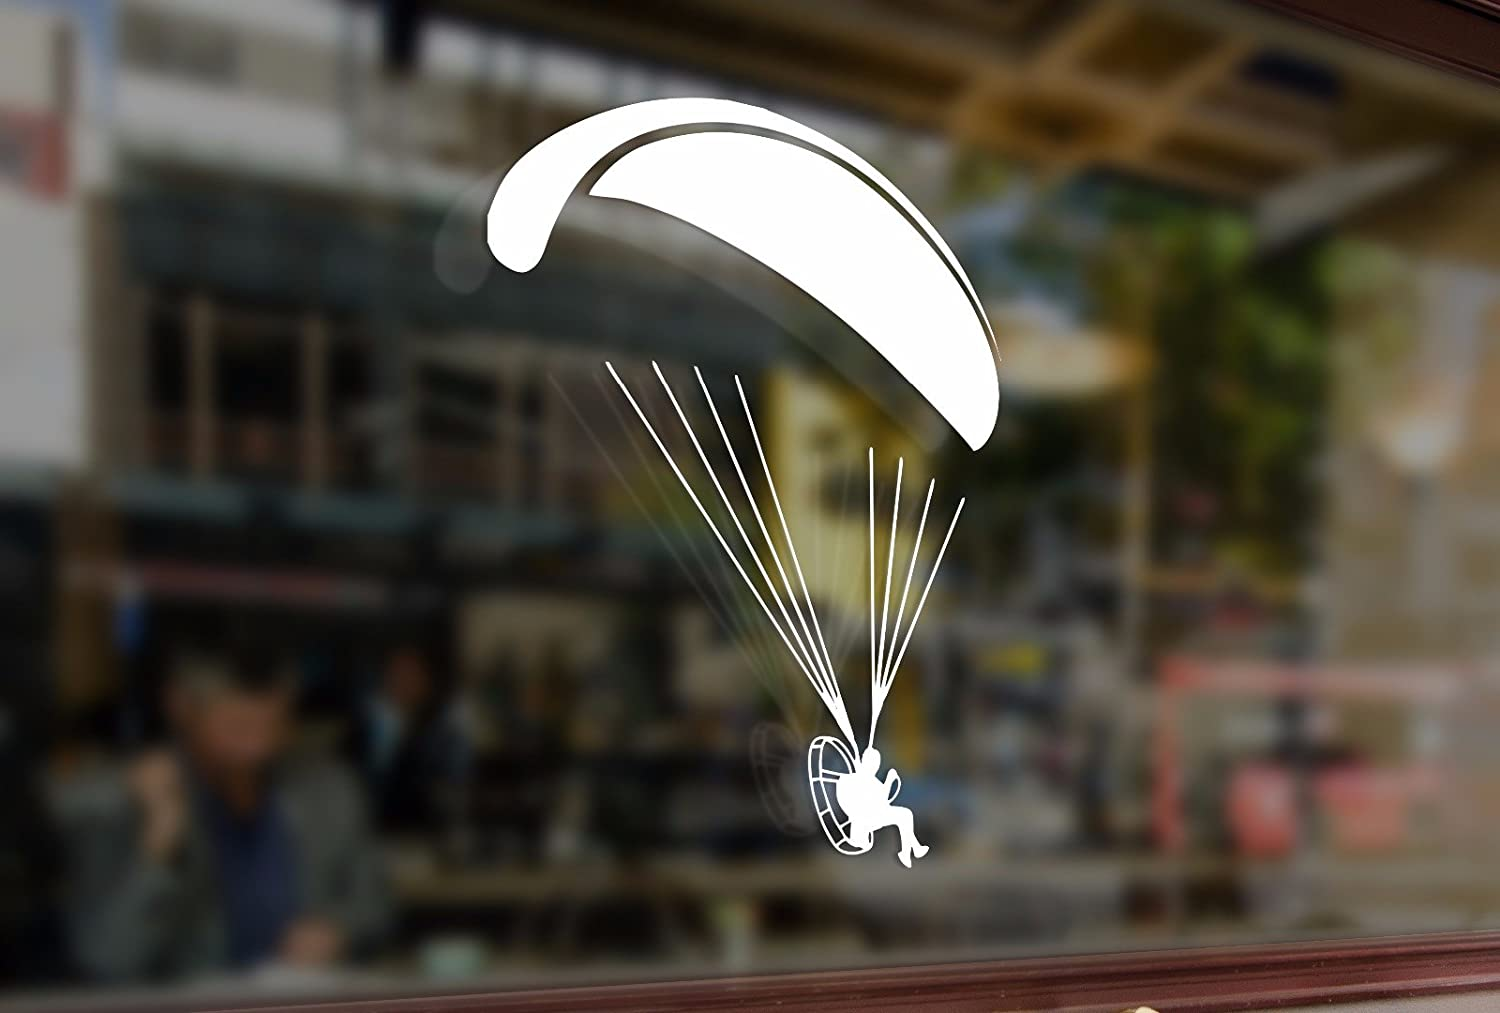 25cm Paramotor flyer Paramotorist Motorparaplan Vinyl Sticker Funny Decals Bumper Car Auto Laptop Wall Window Glass Snowboard Helmet Macbook